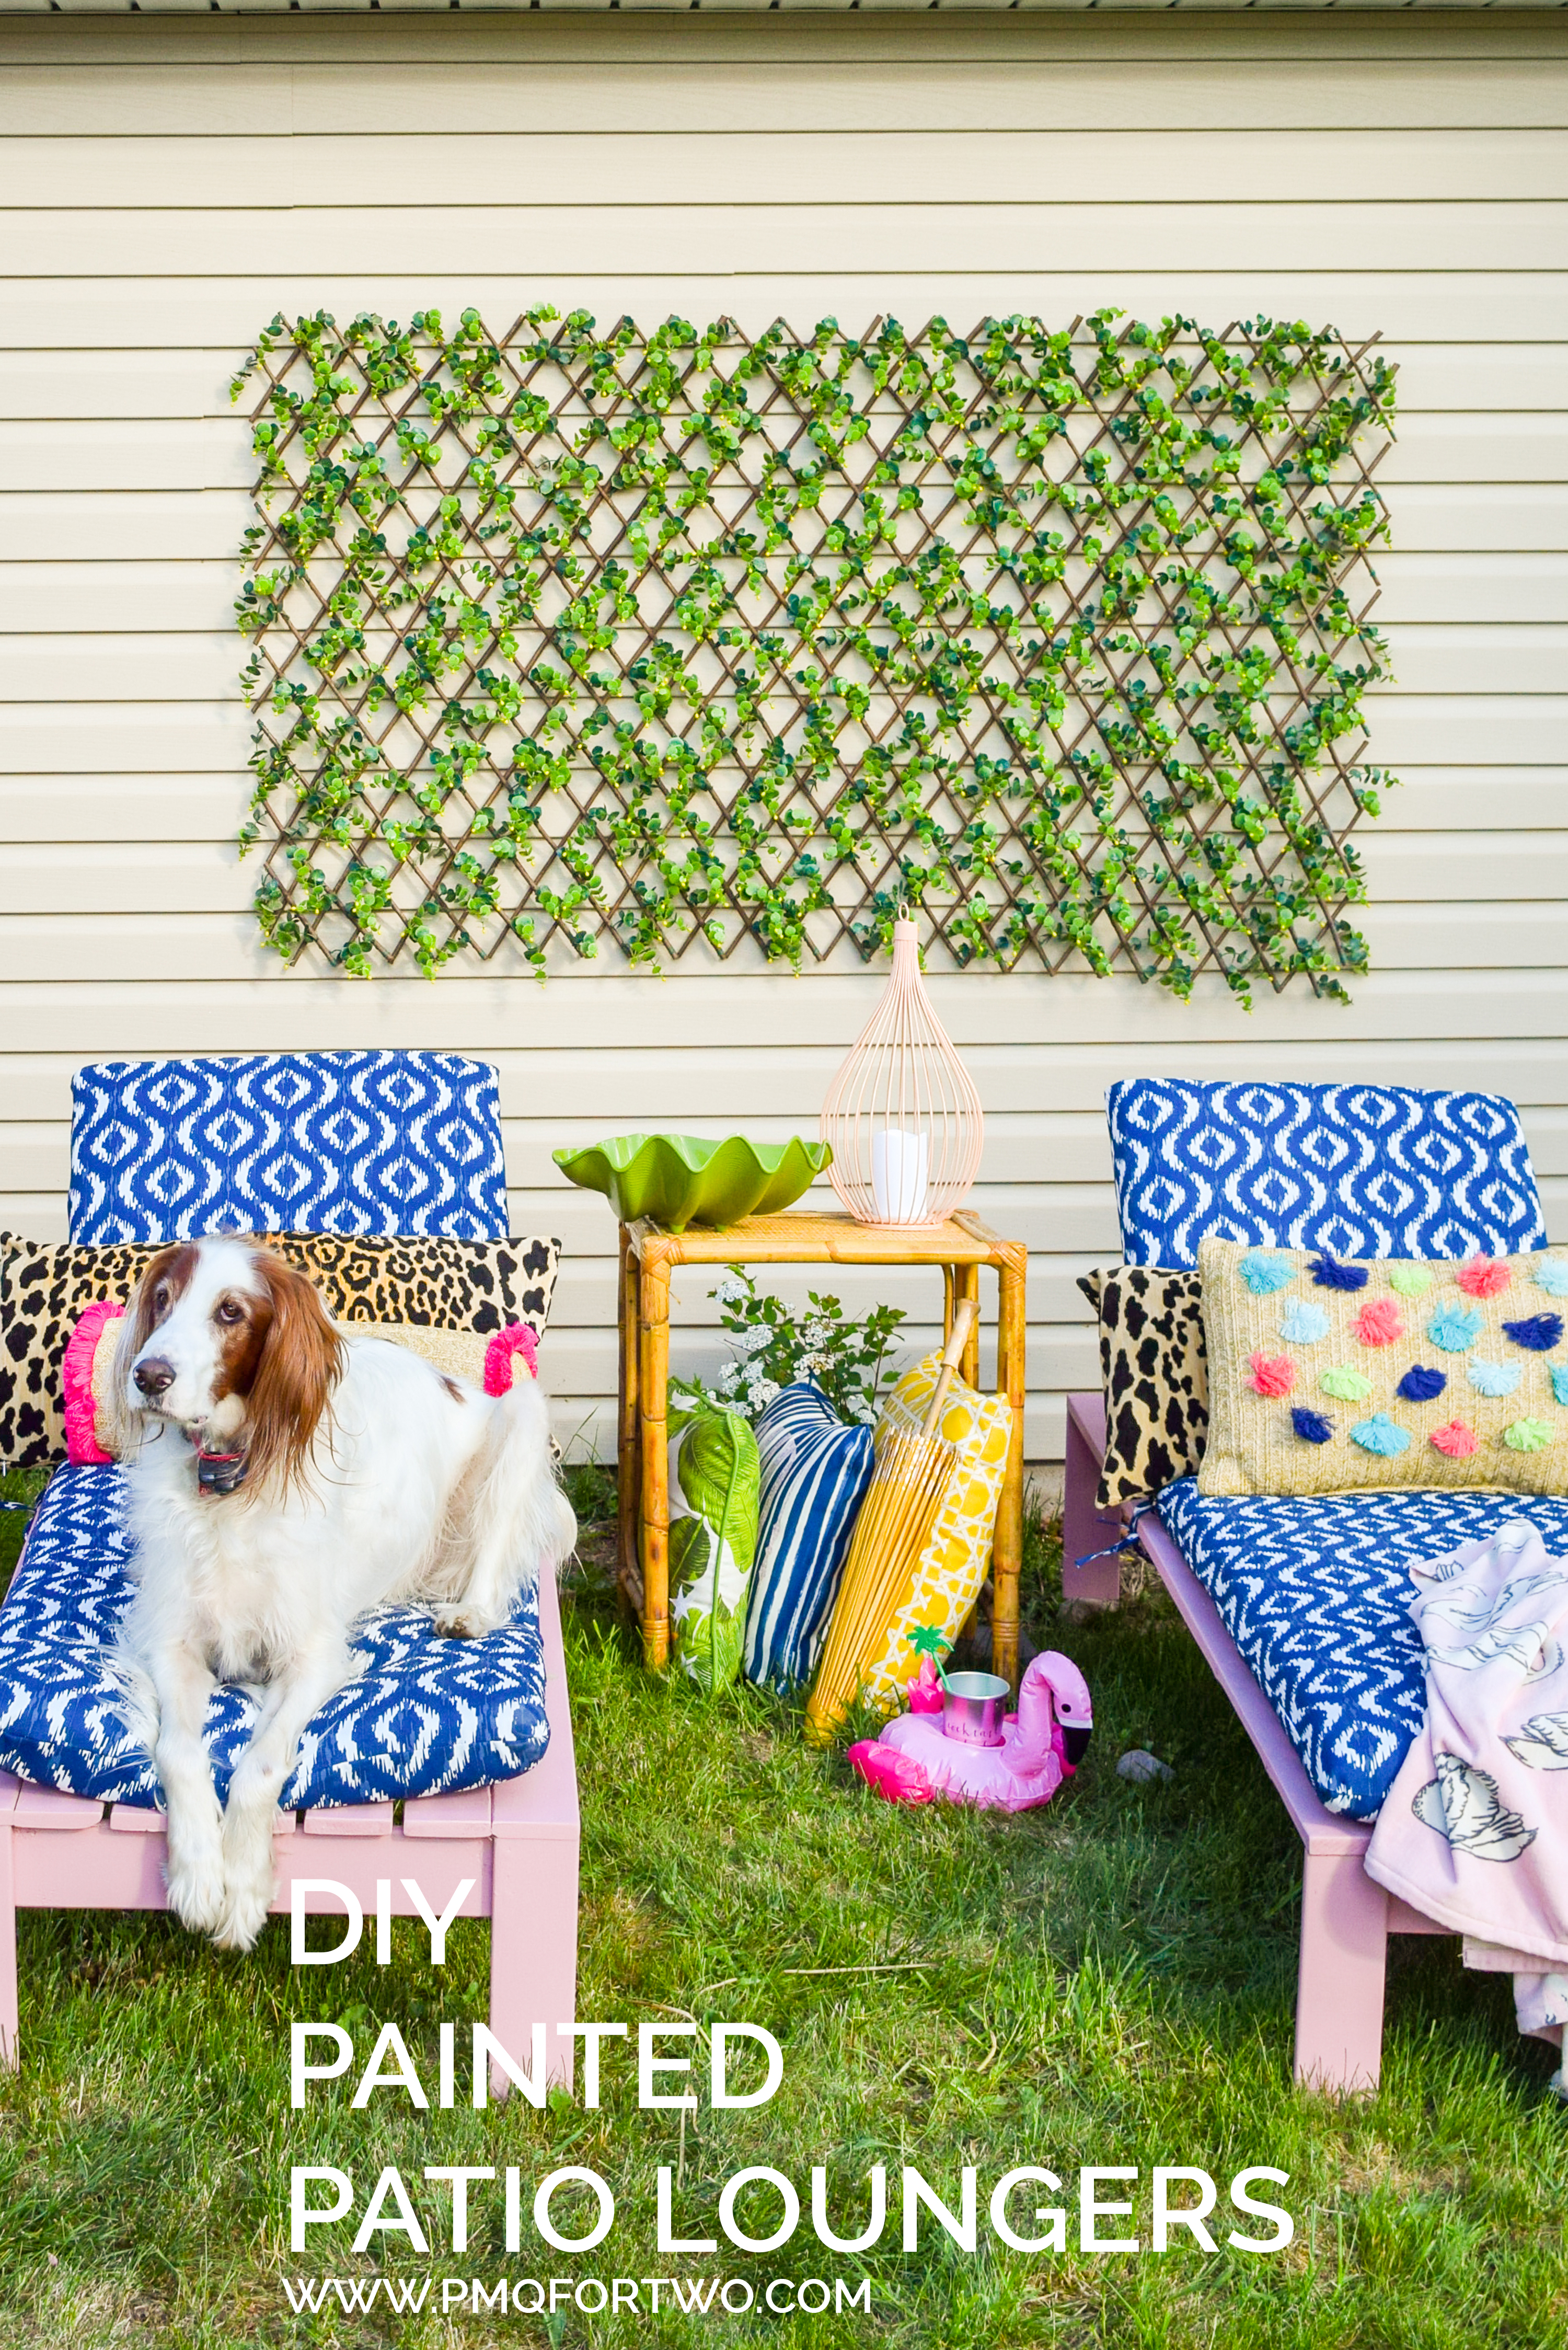 This summer, treat yourself to some DIY Patio Loungers painted in a bright and colourful shade. Your yard, patio, or balcony can easily hold one and they're affordable to make. With the quality behind the BEHR name, you know the paint will hold up to anything you throw at it this summer.